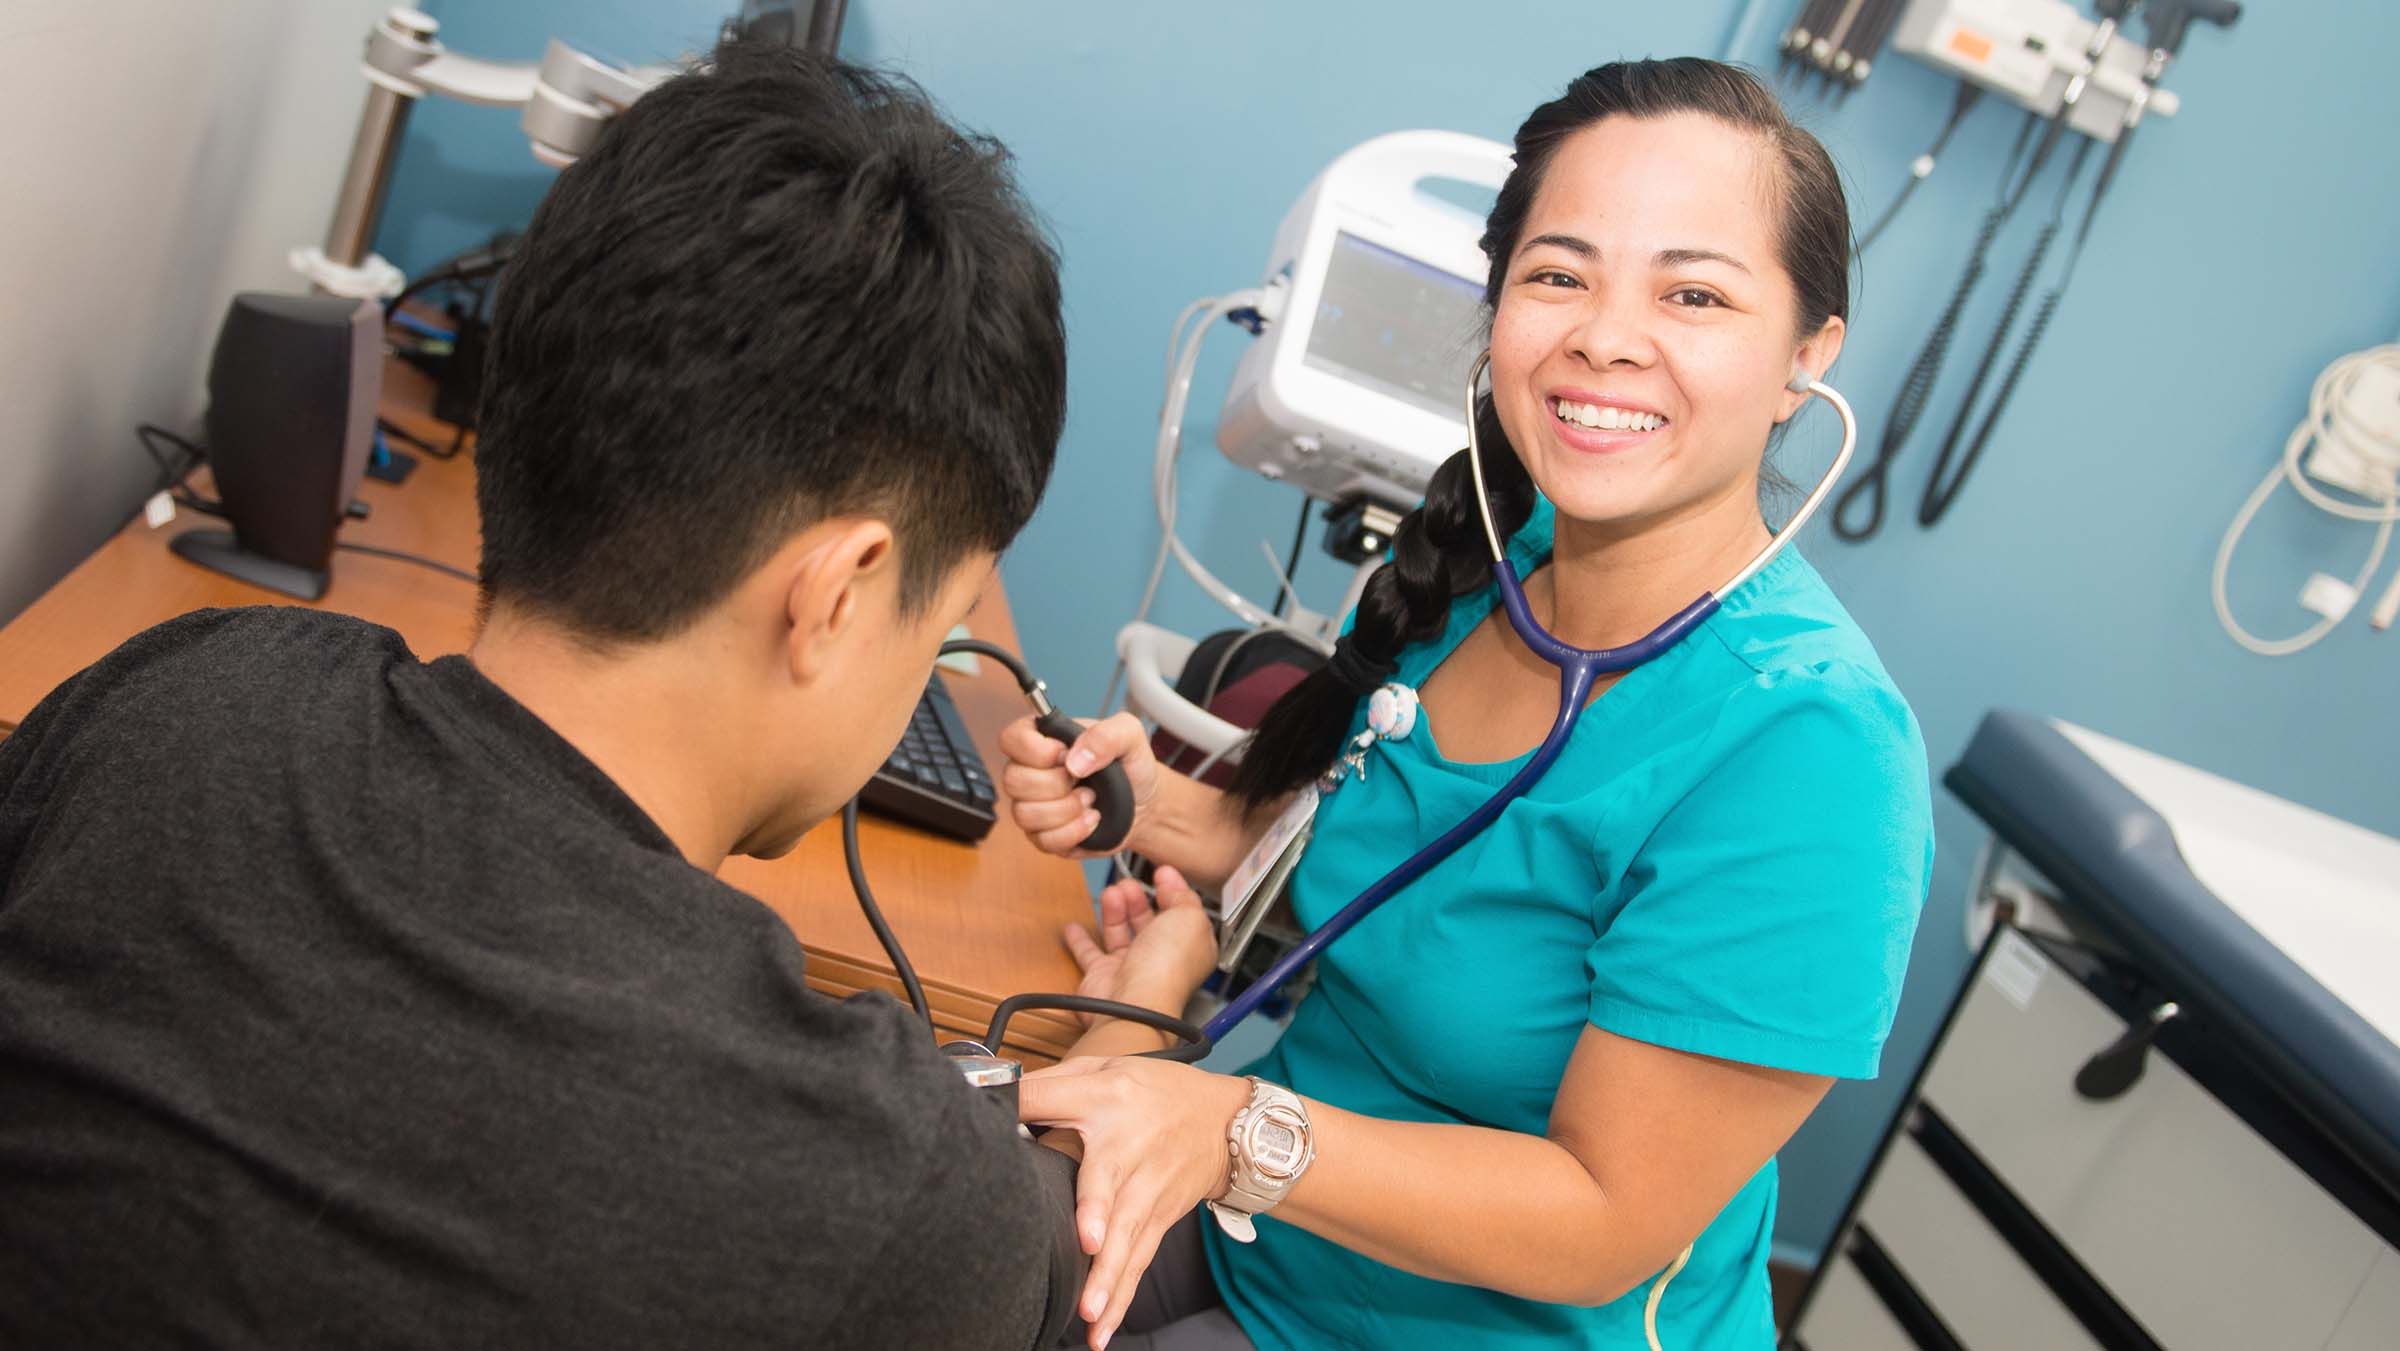 Nurse practitioner records a patient's vitals during a routine appointment